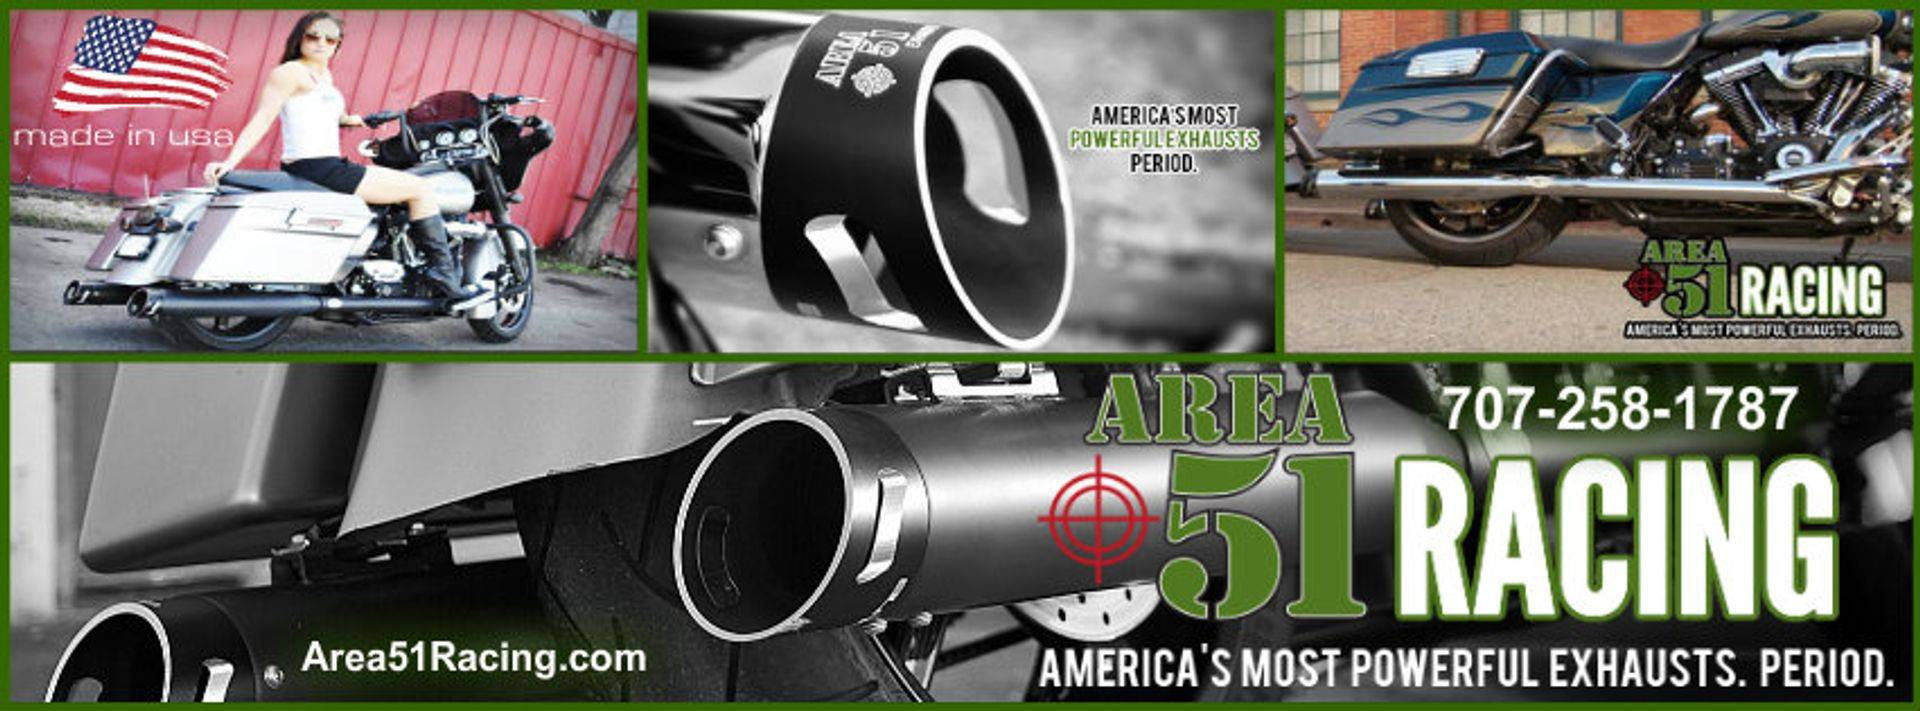 Area51Racing Bagger Pipes